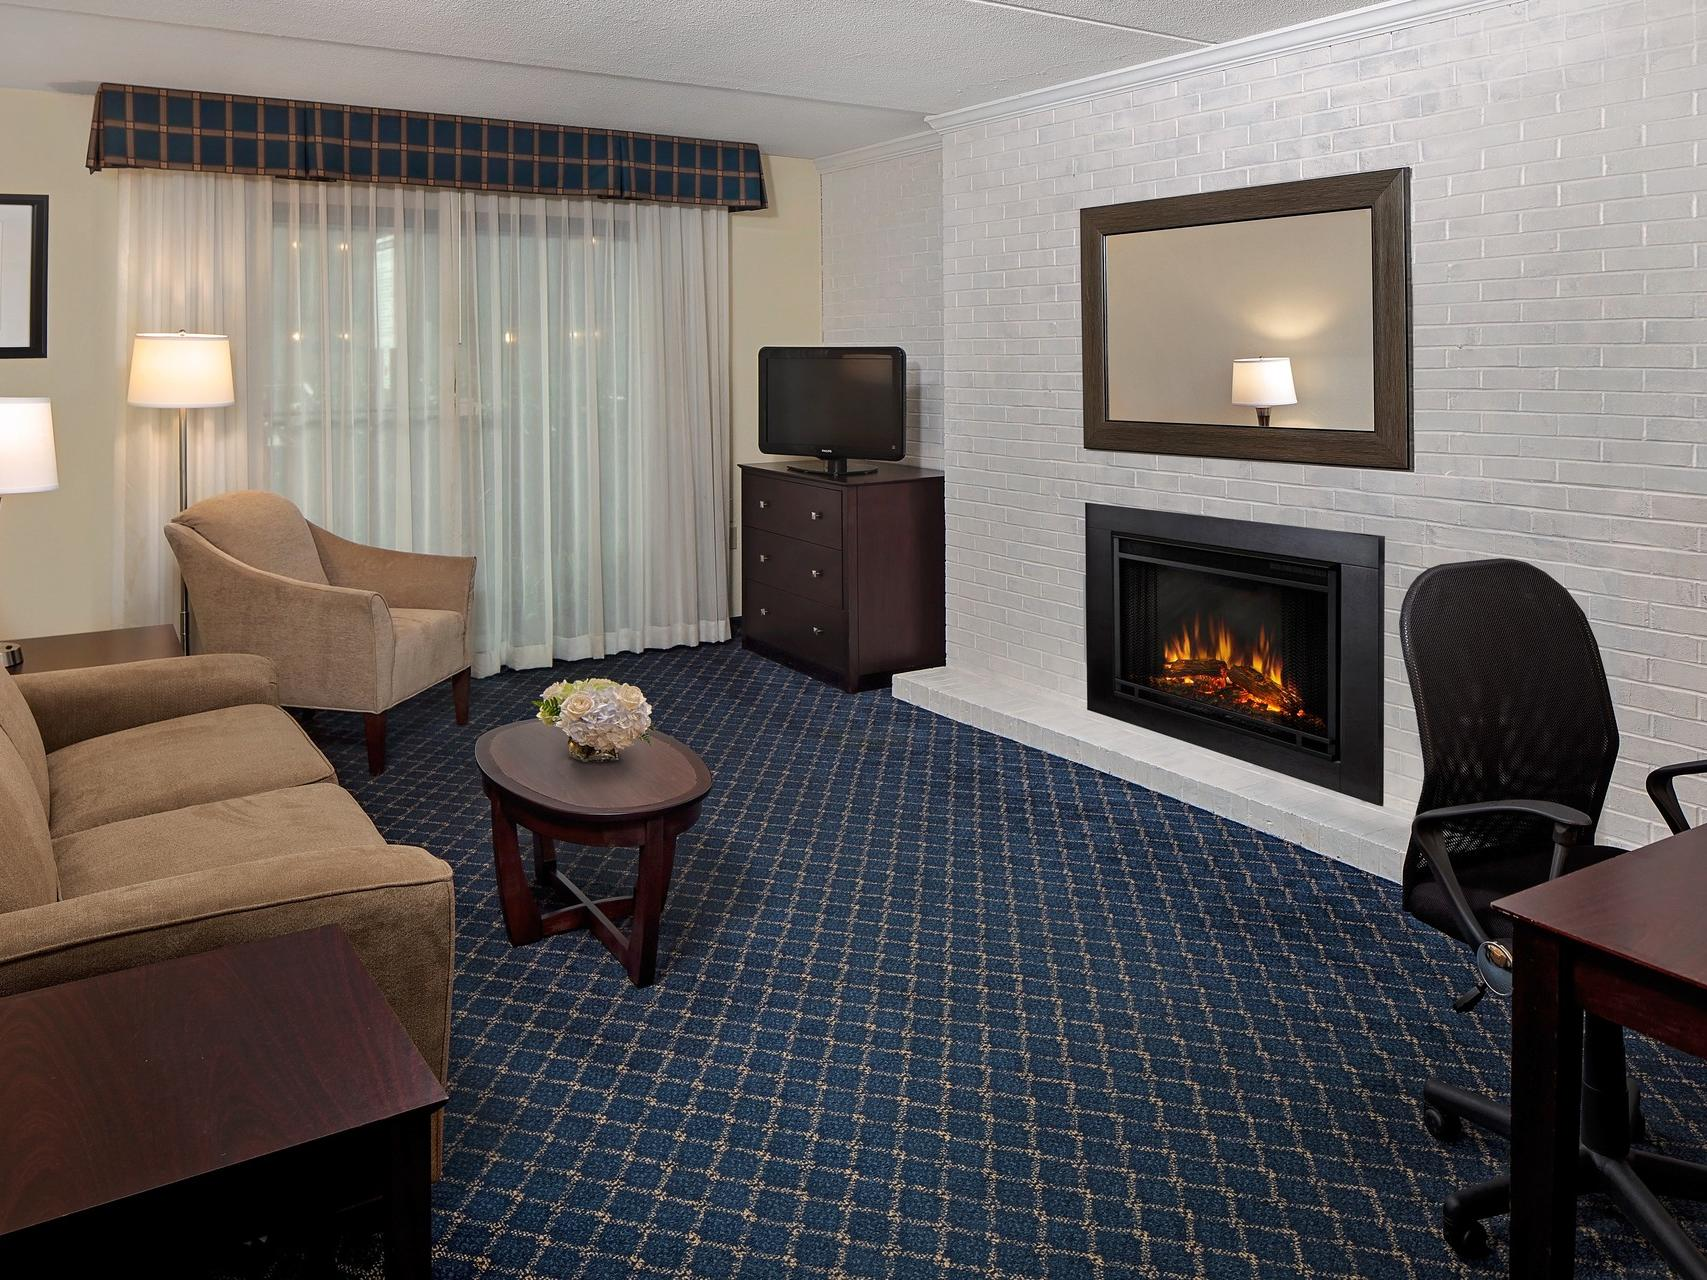 Brown couch in hotel room with fireplace